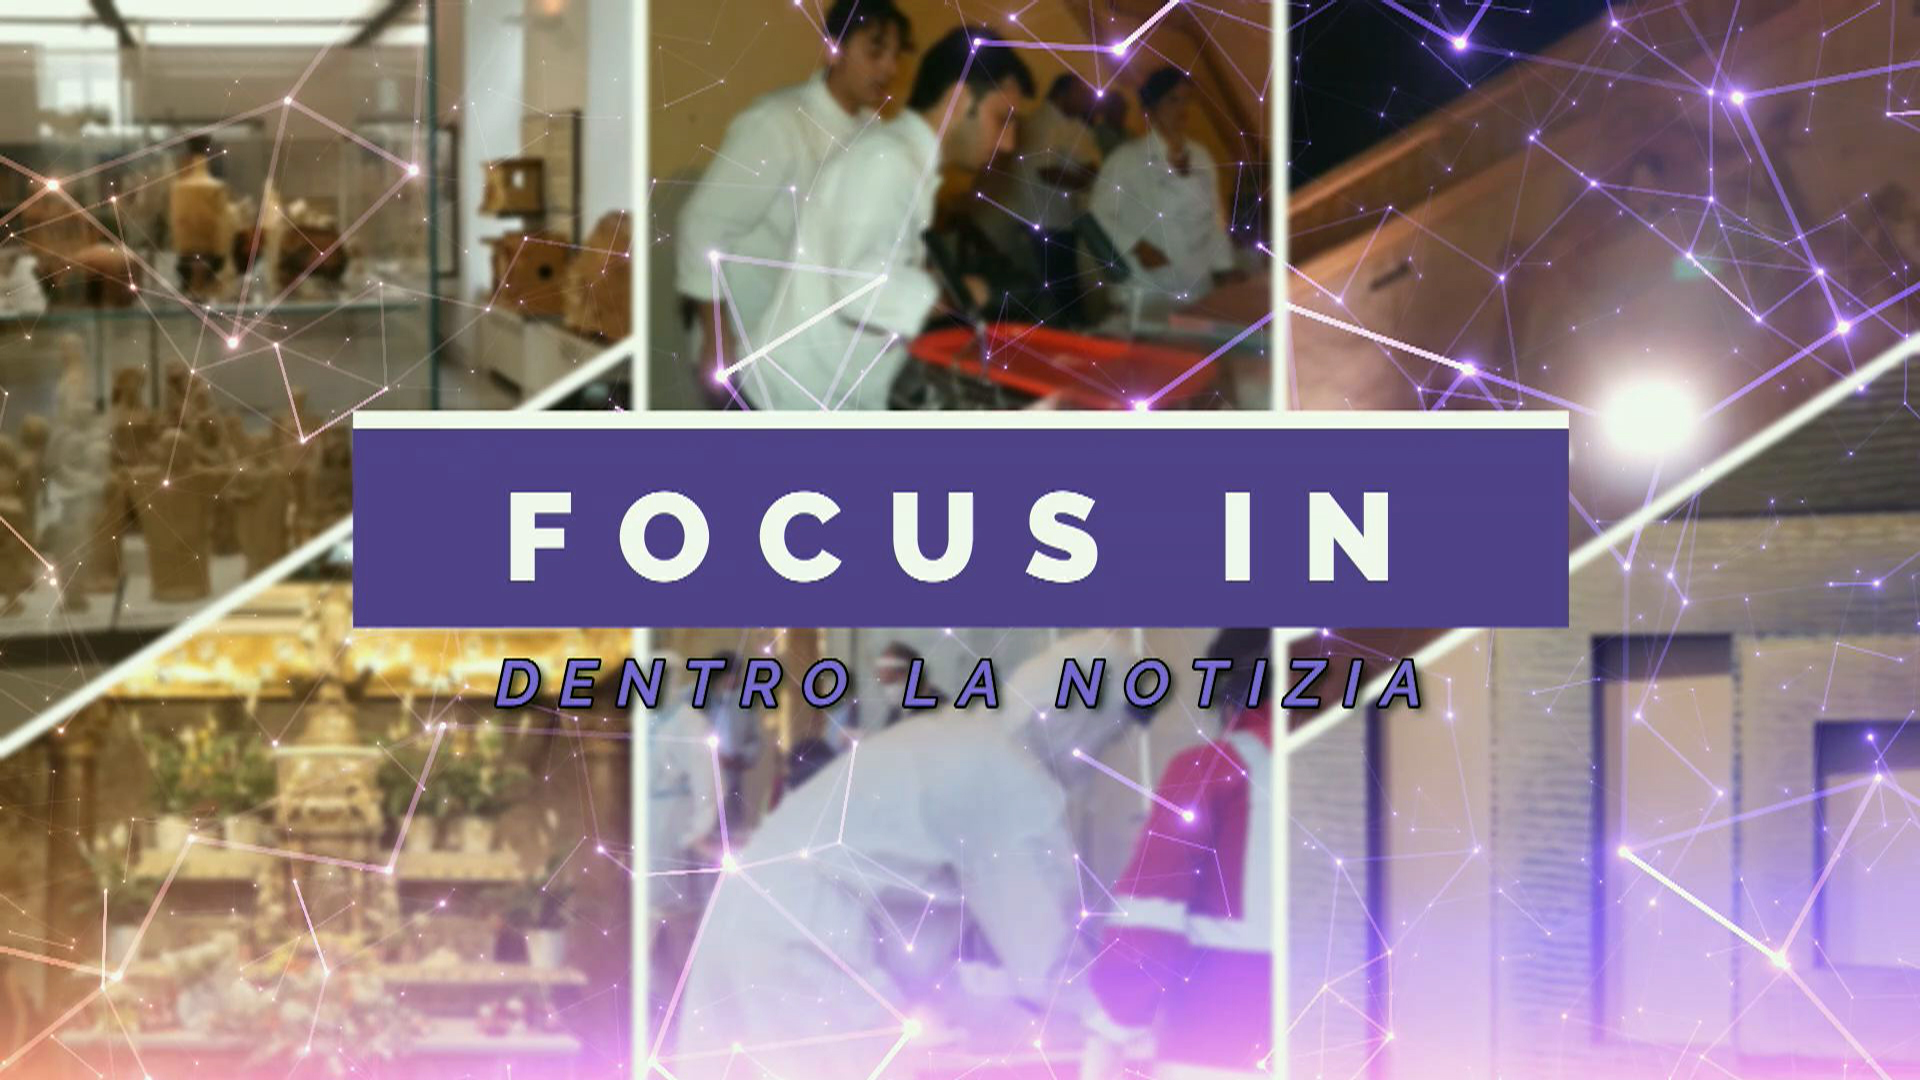 FOCUS IN - Dentro la notizia